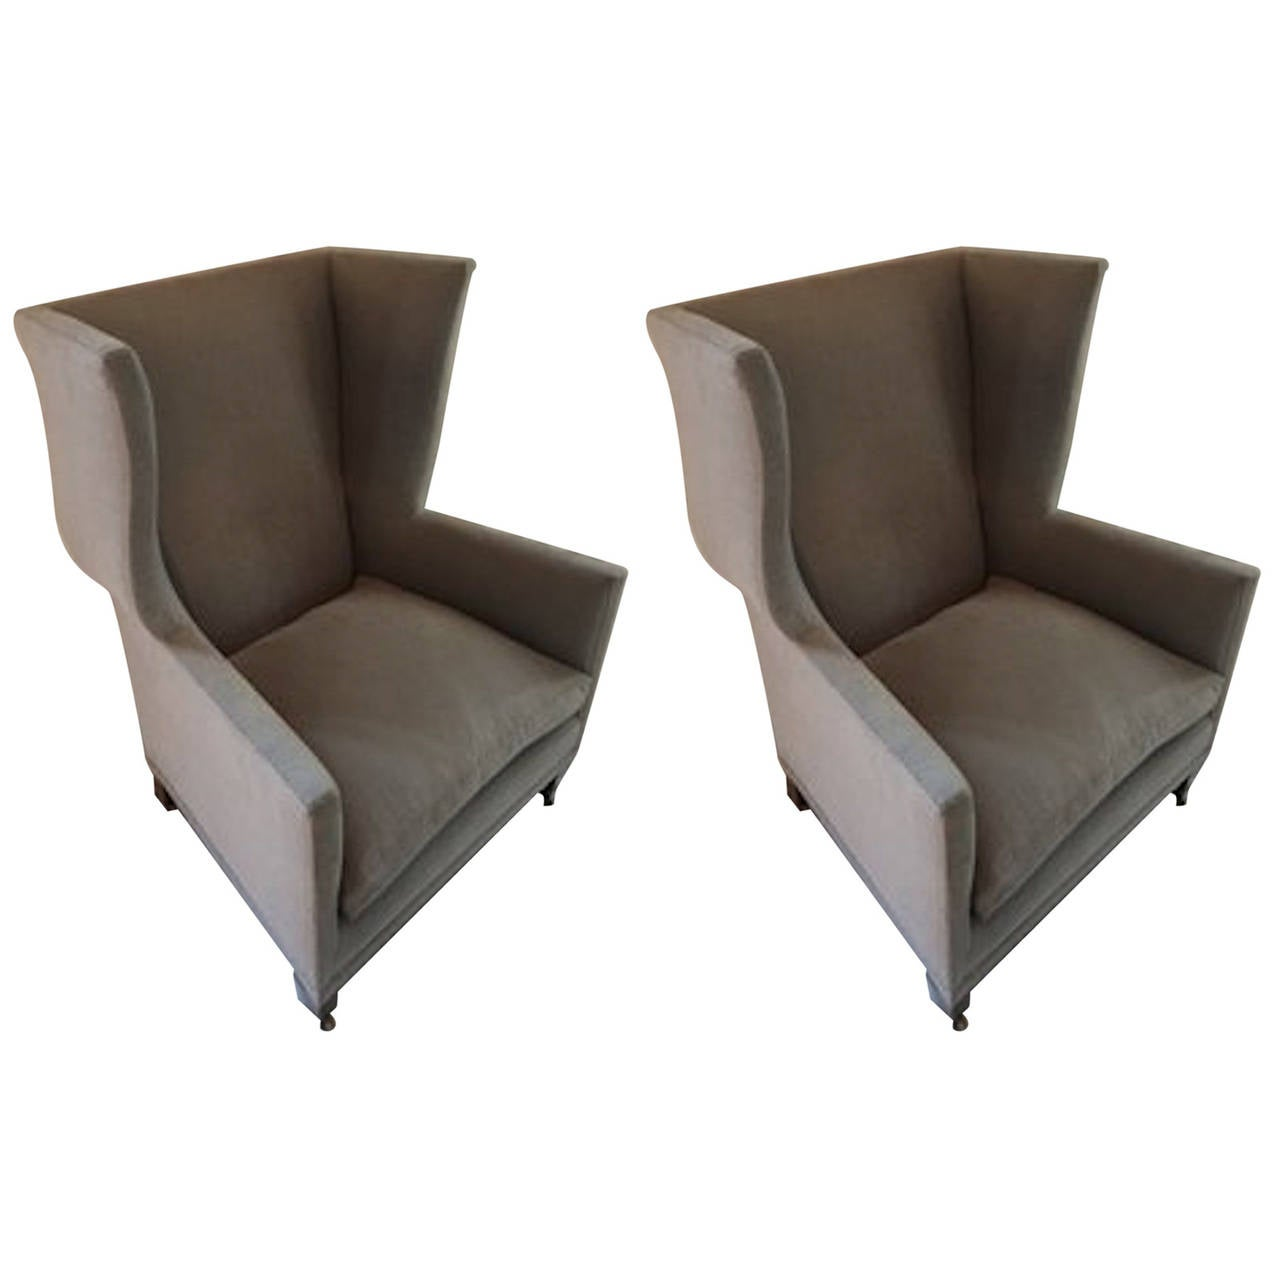 arm chairs for sale extra big folding chair english style upholstered pair of grey wing back armchairs